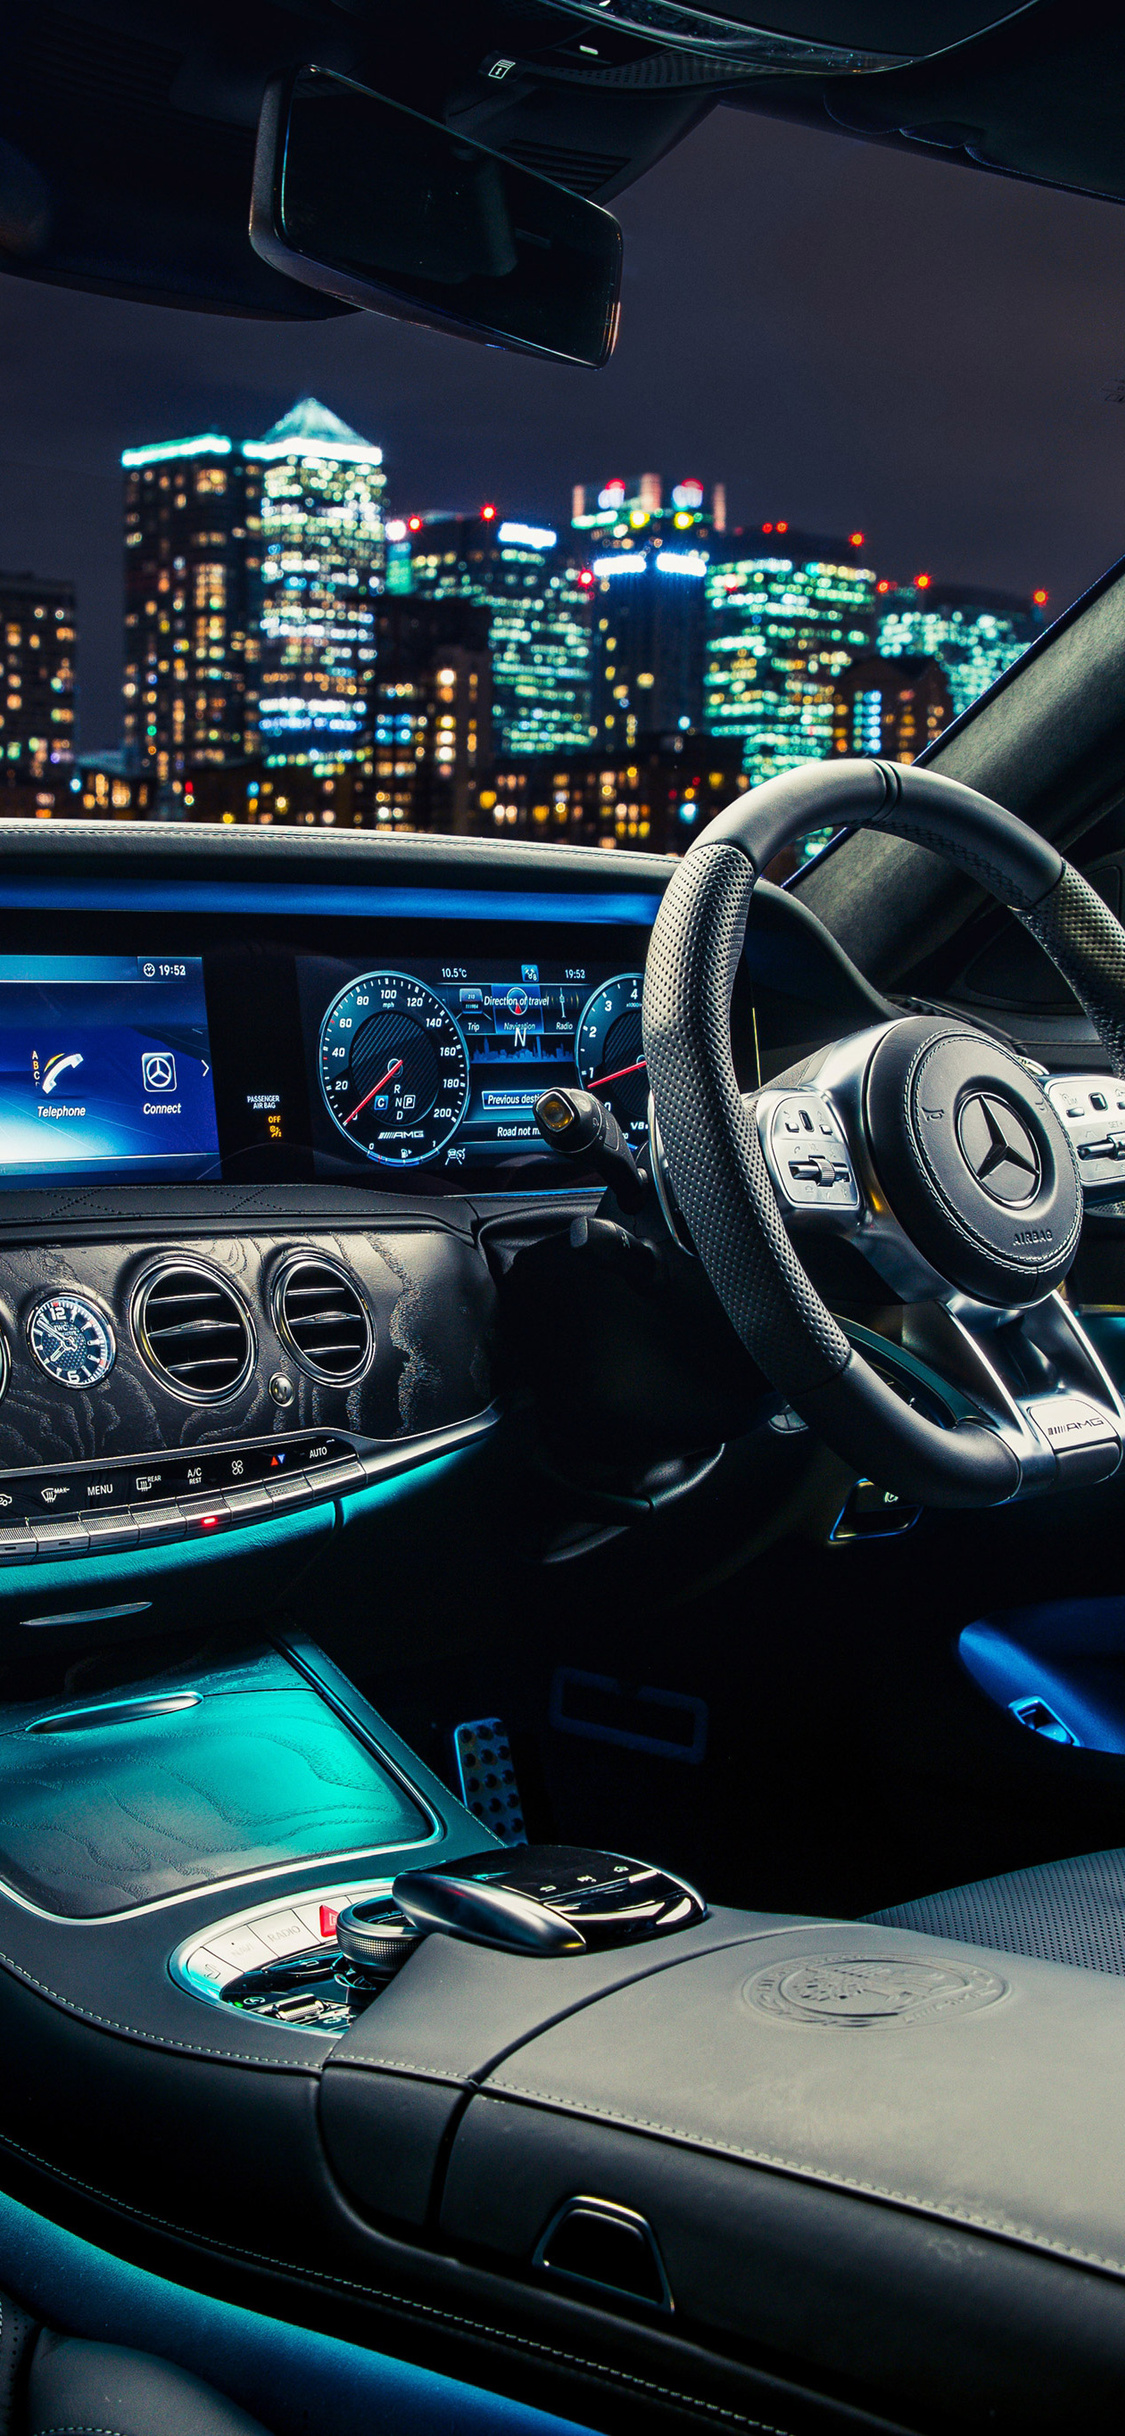 1125x2436 Mercedes Amg S 63 4matic Interior Iphone Xs Iphone 10